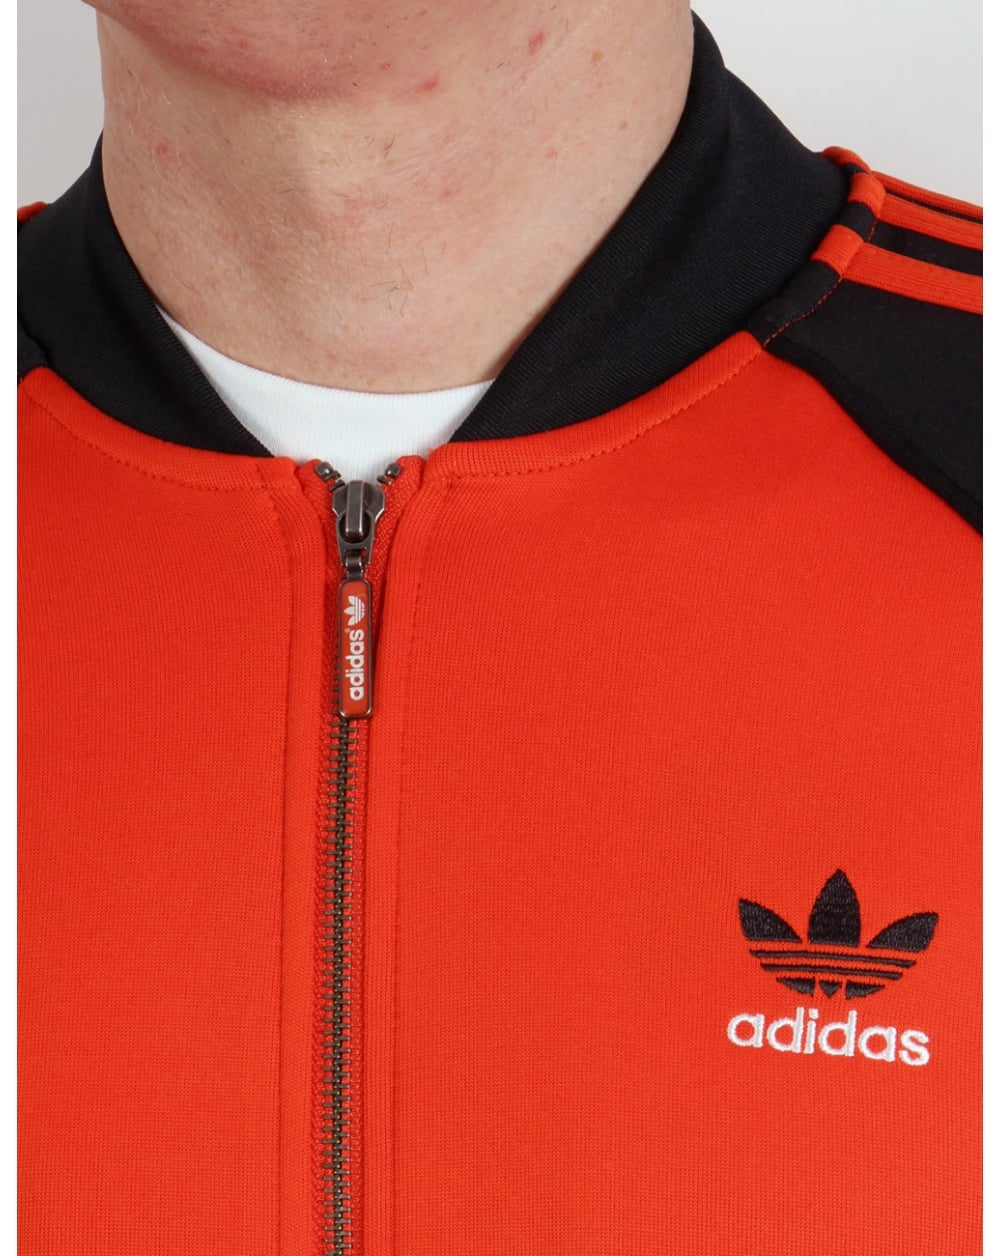 Adidas Originals Superstar Track Top Orange Black Jacket